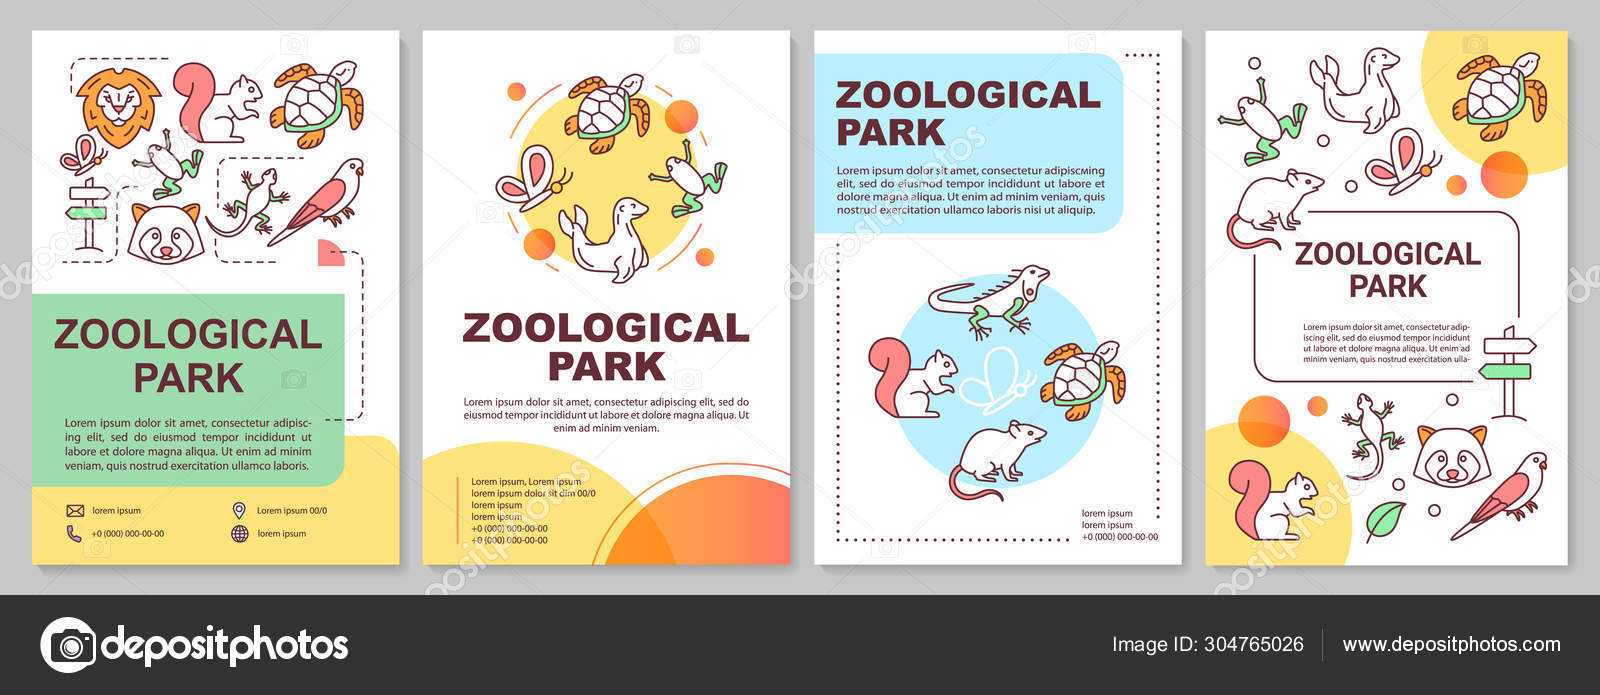 Zoological Park Brochure Template Layout. Zoo Animals. Flyer Within Zoo Brochure Template